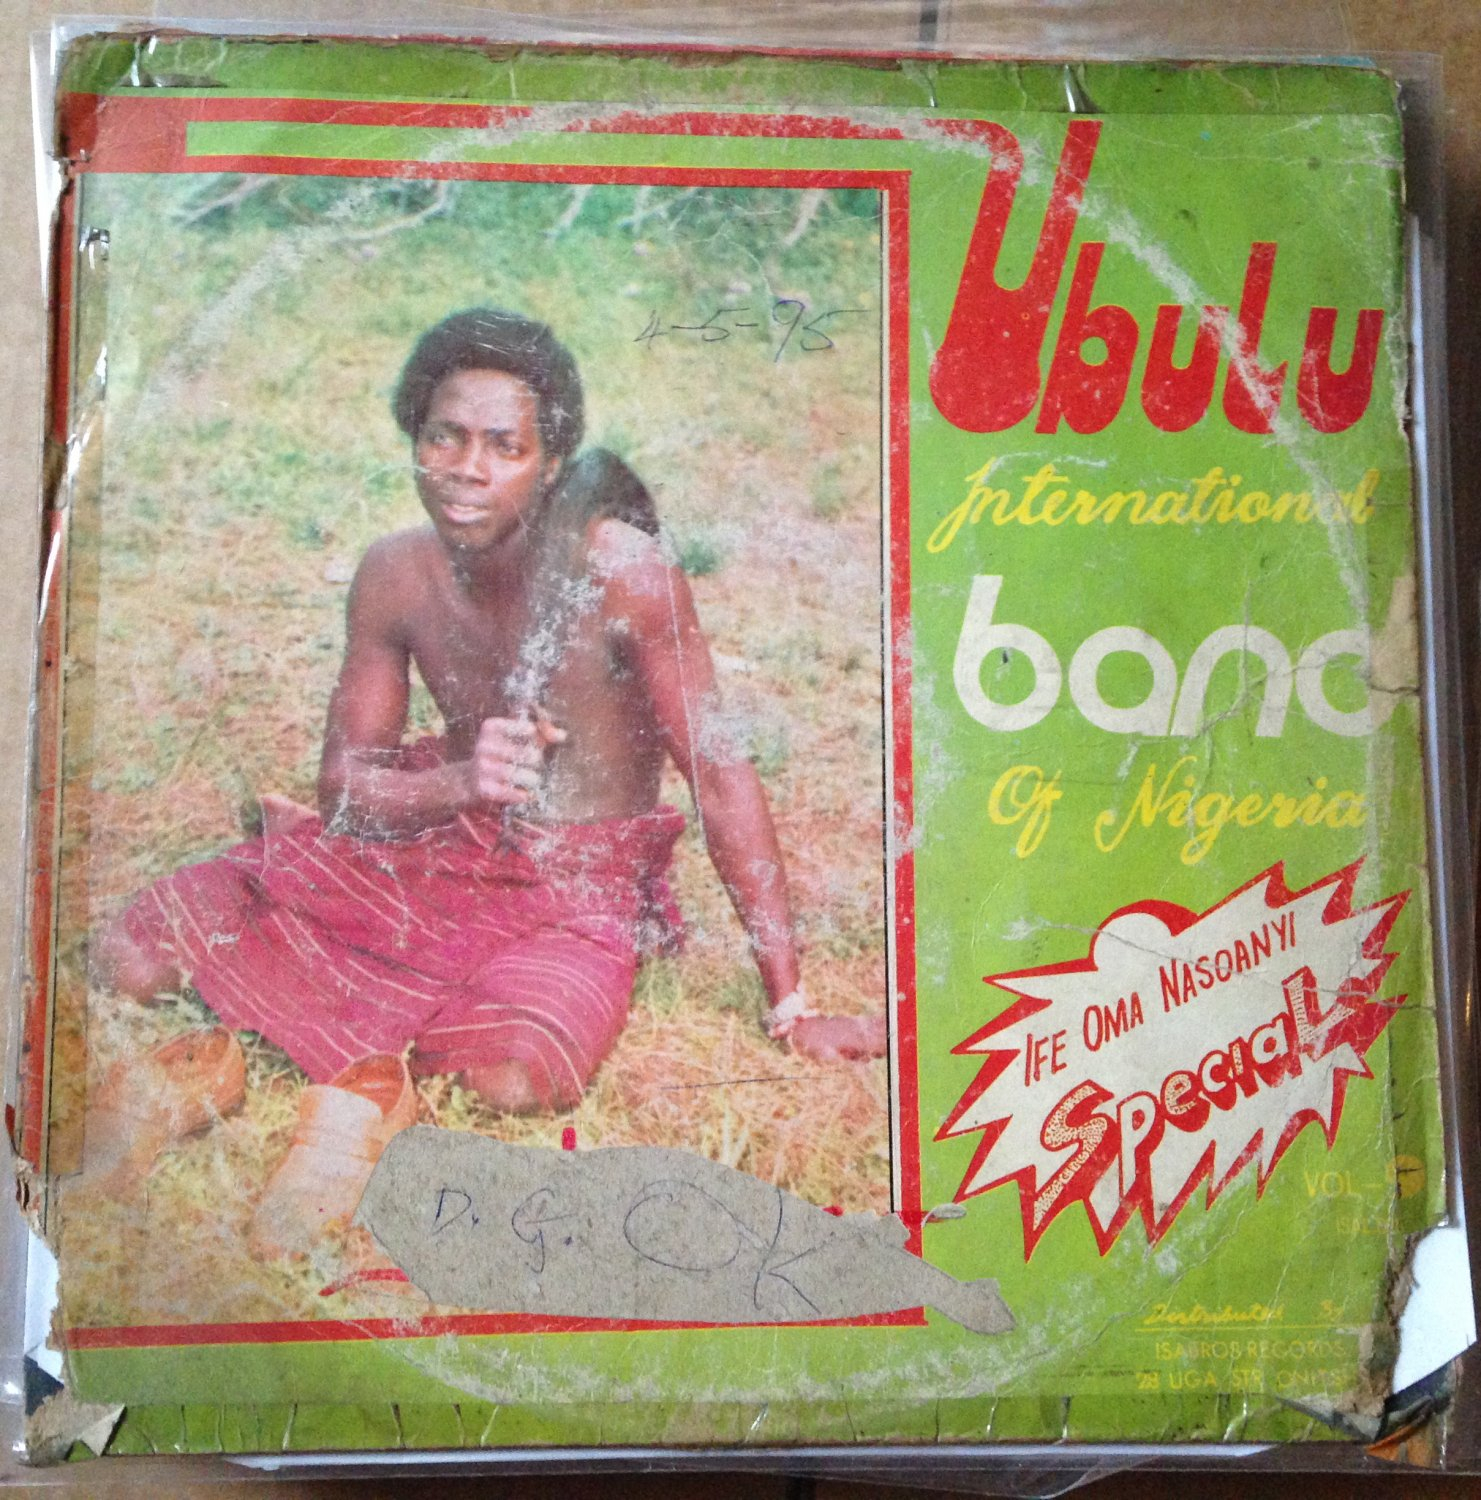 UBULU INTERNATIONAL BAND LP ife oma nasoanyi NIGERIA mp3 LISTEN